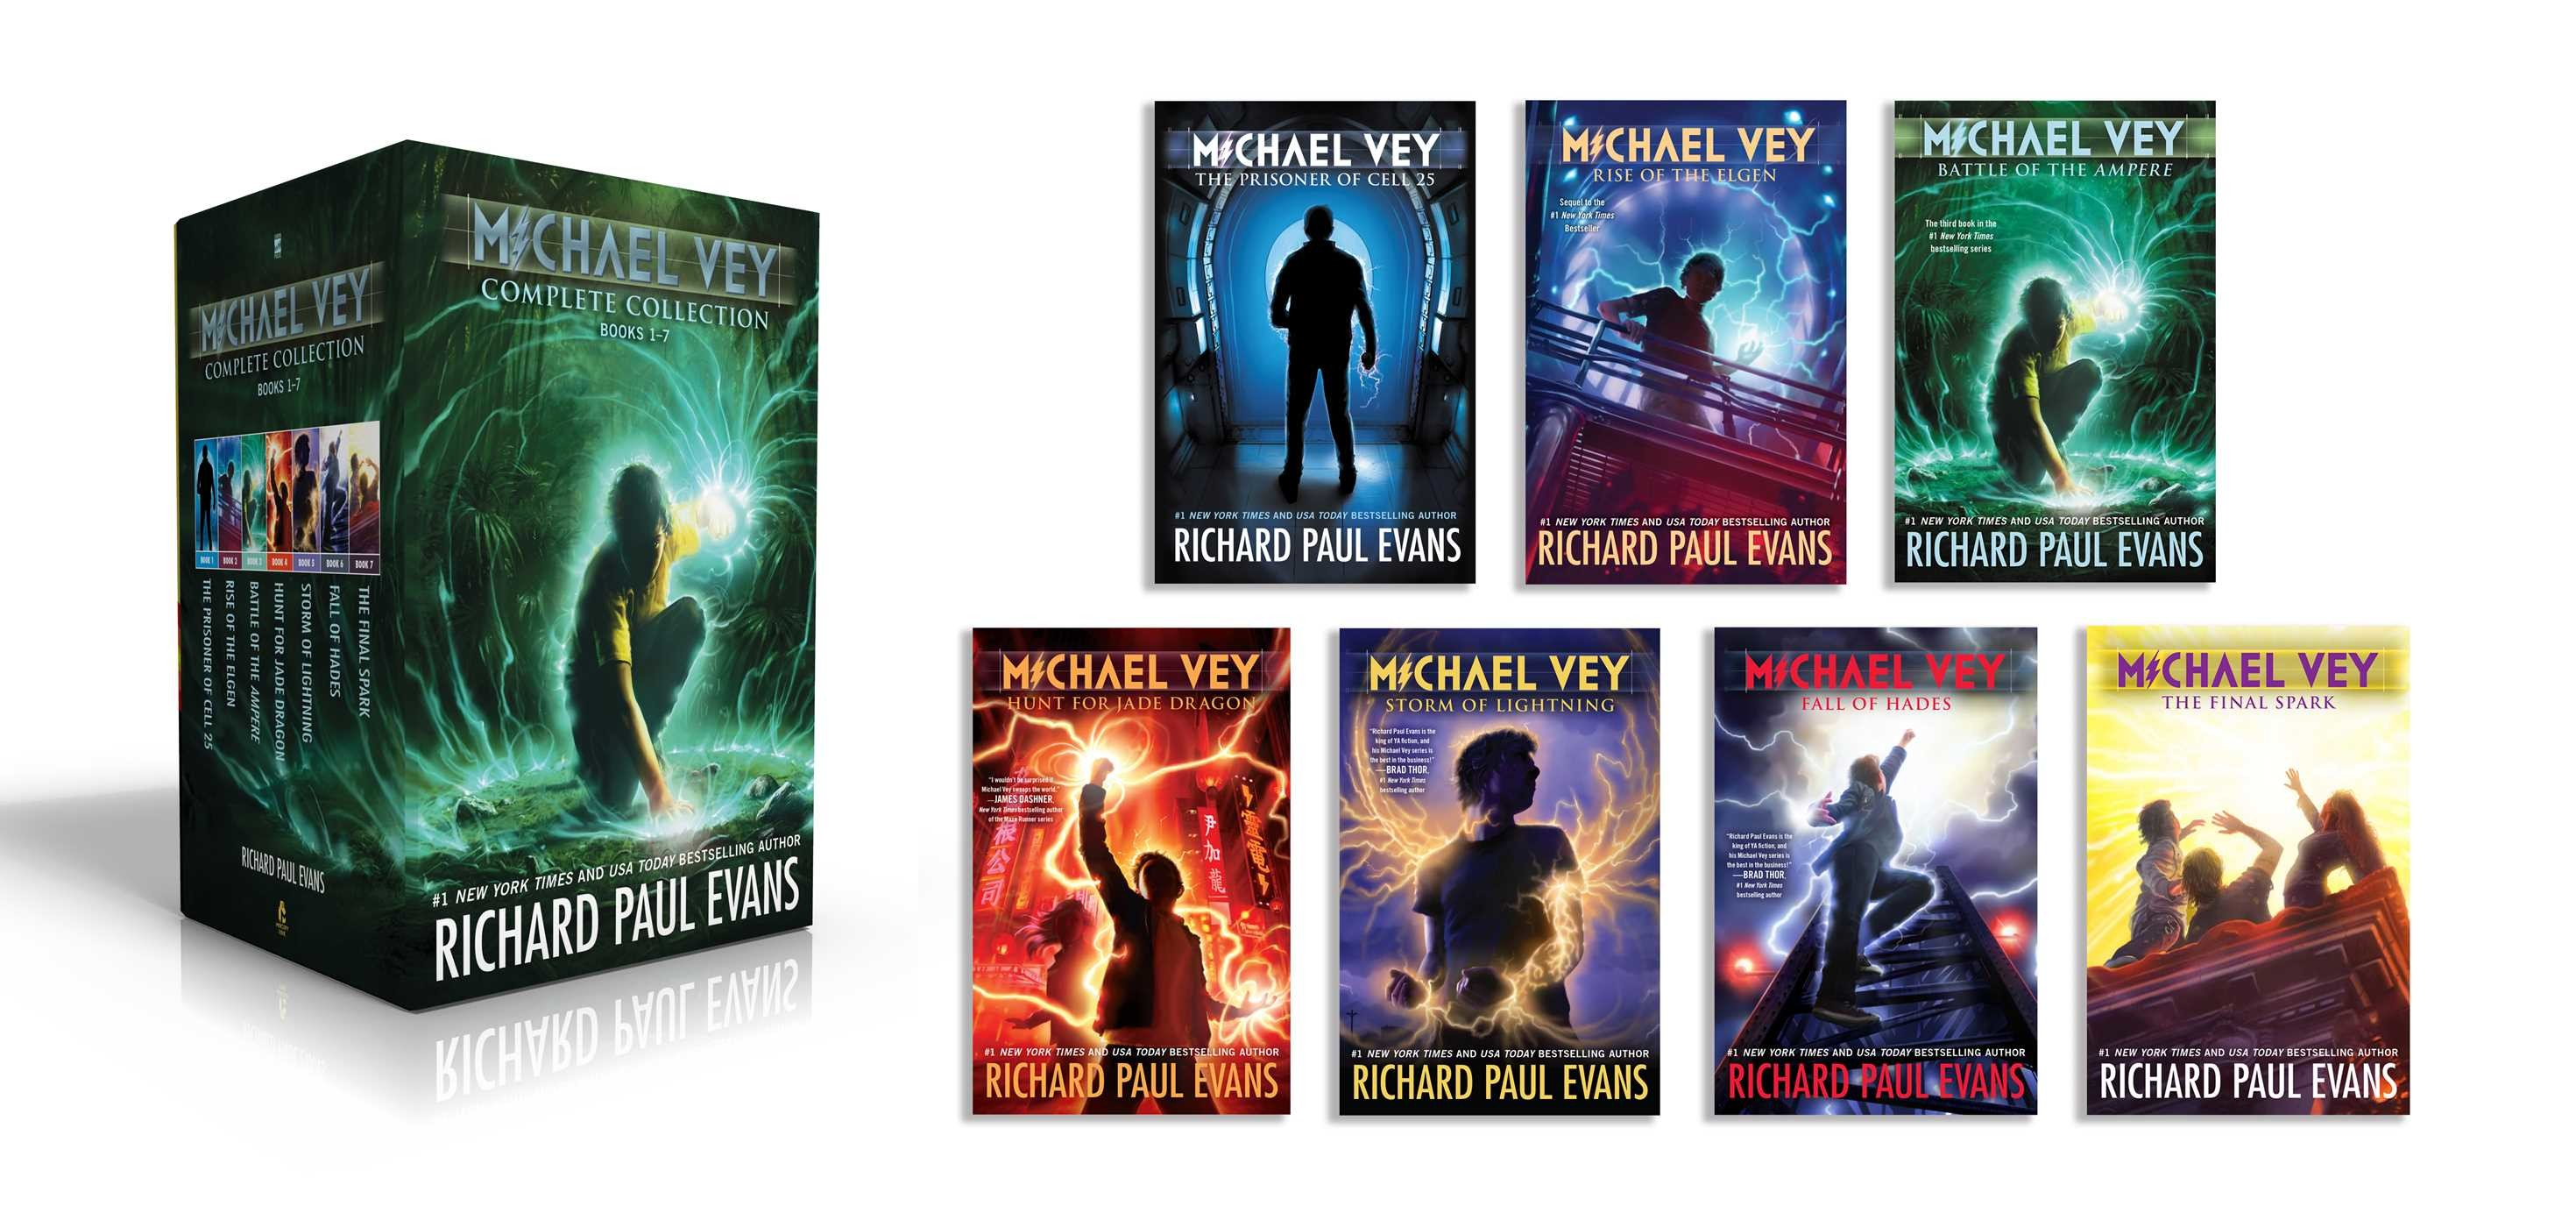 Michael vey complete collection books 1 7 9781534416208.in01